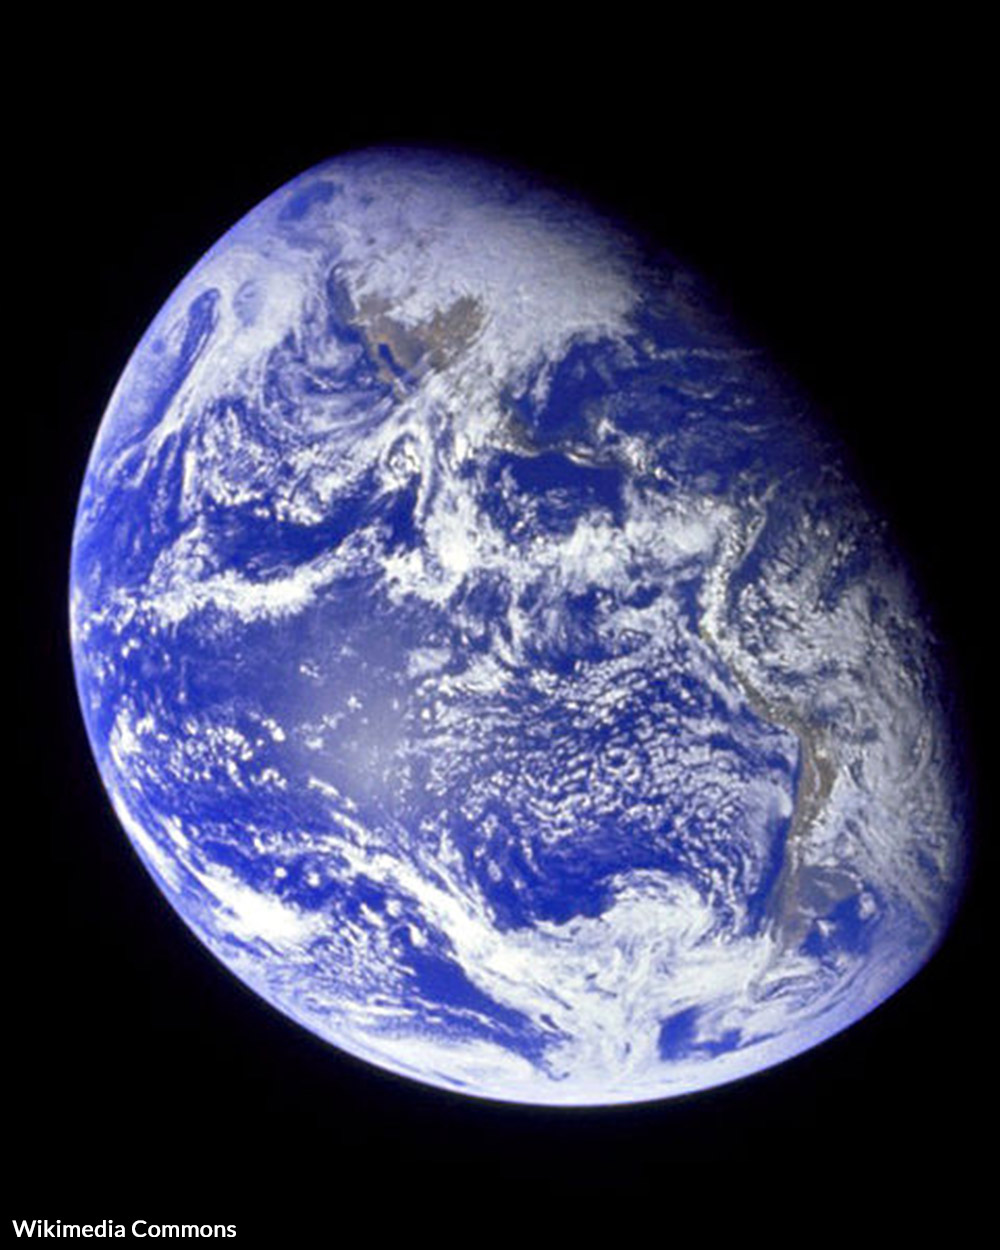 Earth as seen from space on the Apollo 8 mission.